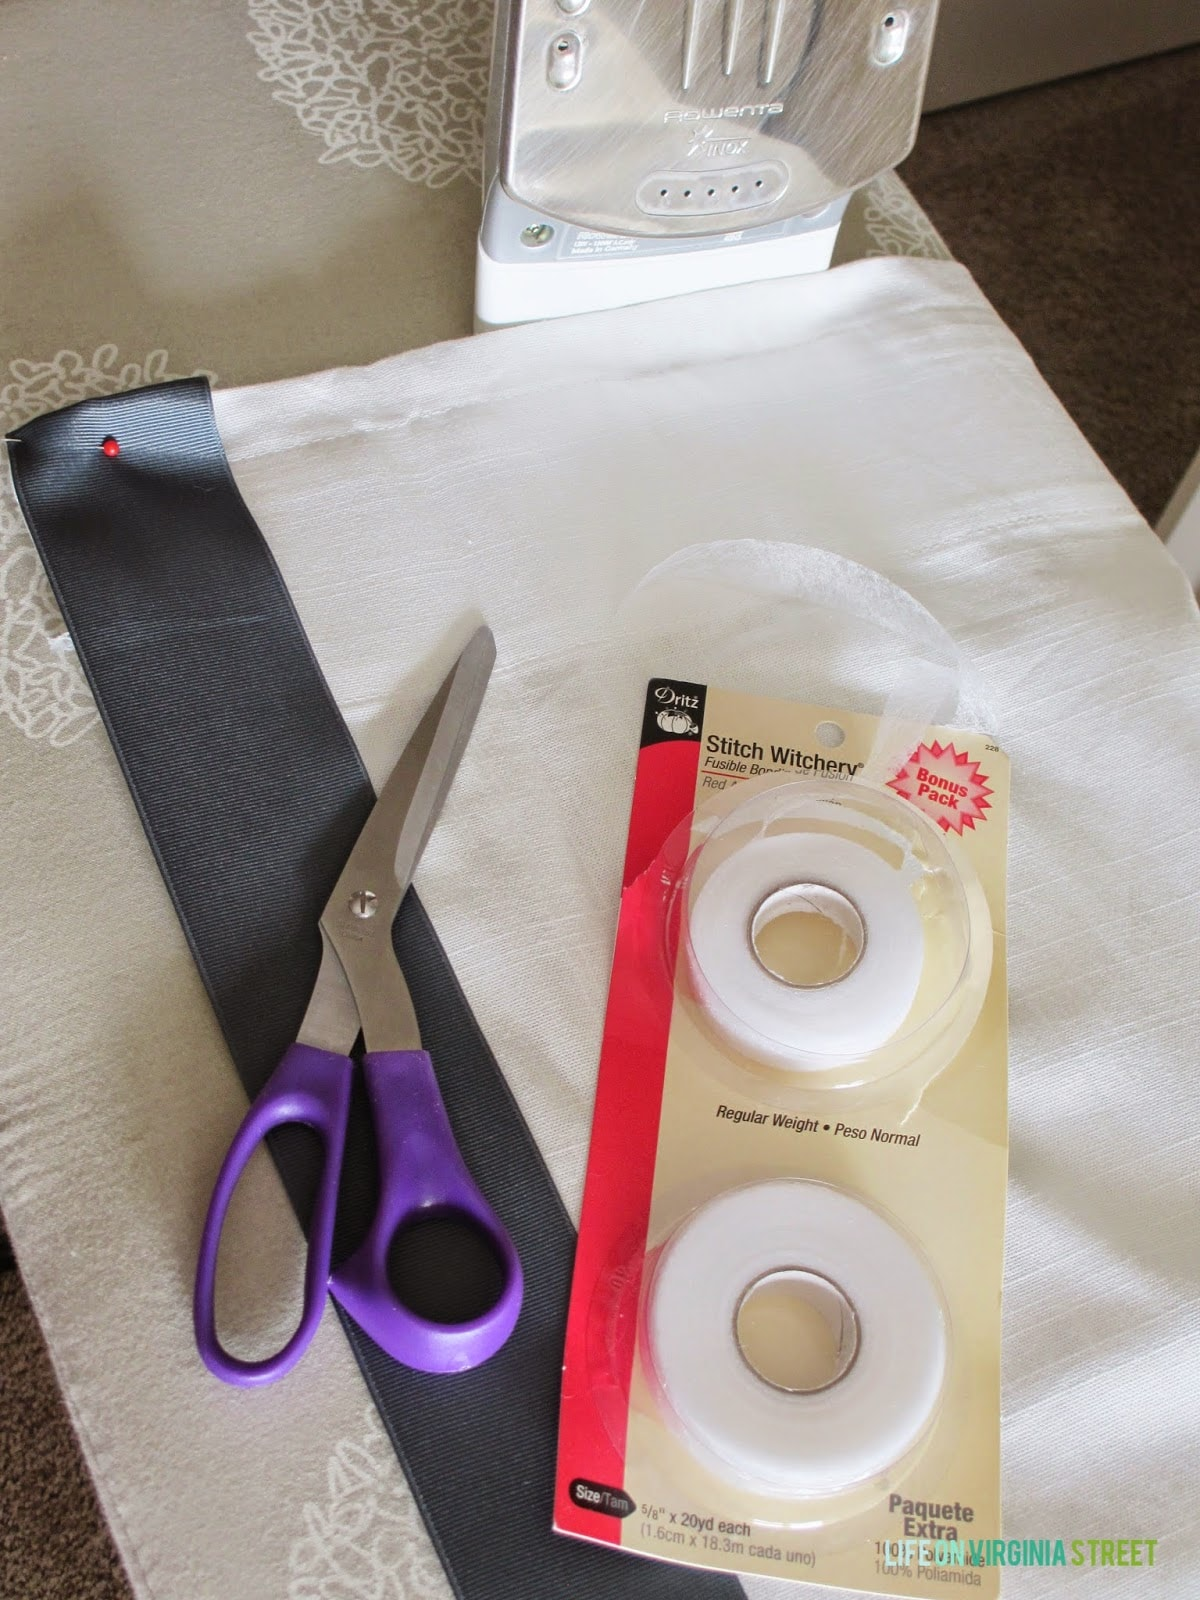 Fabric, scissors, stitch tape on the counter.